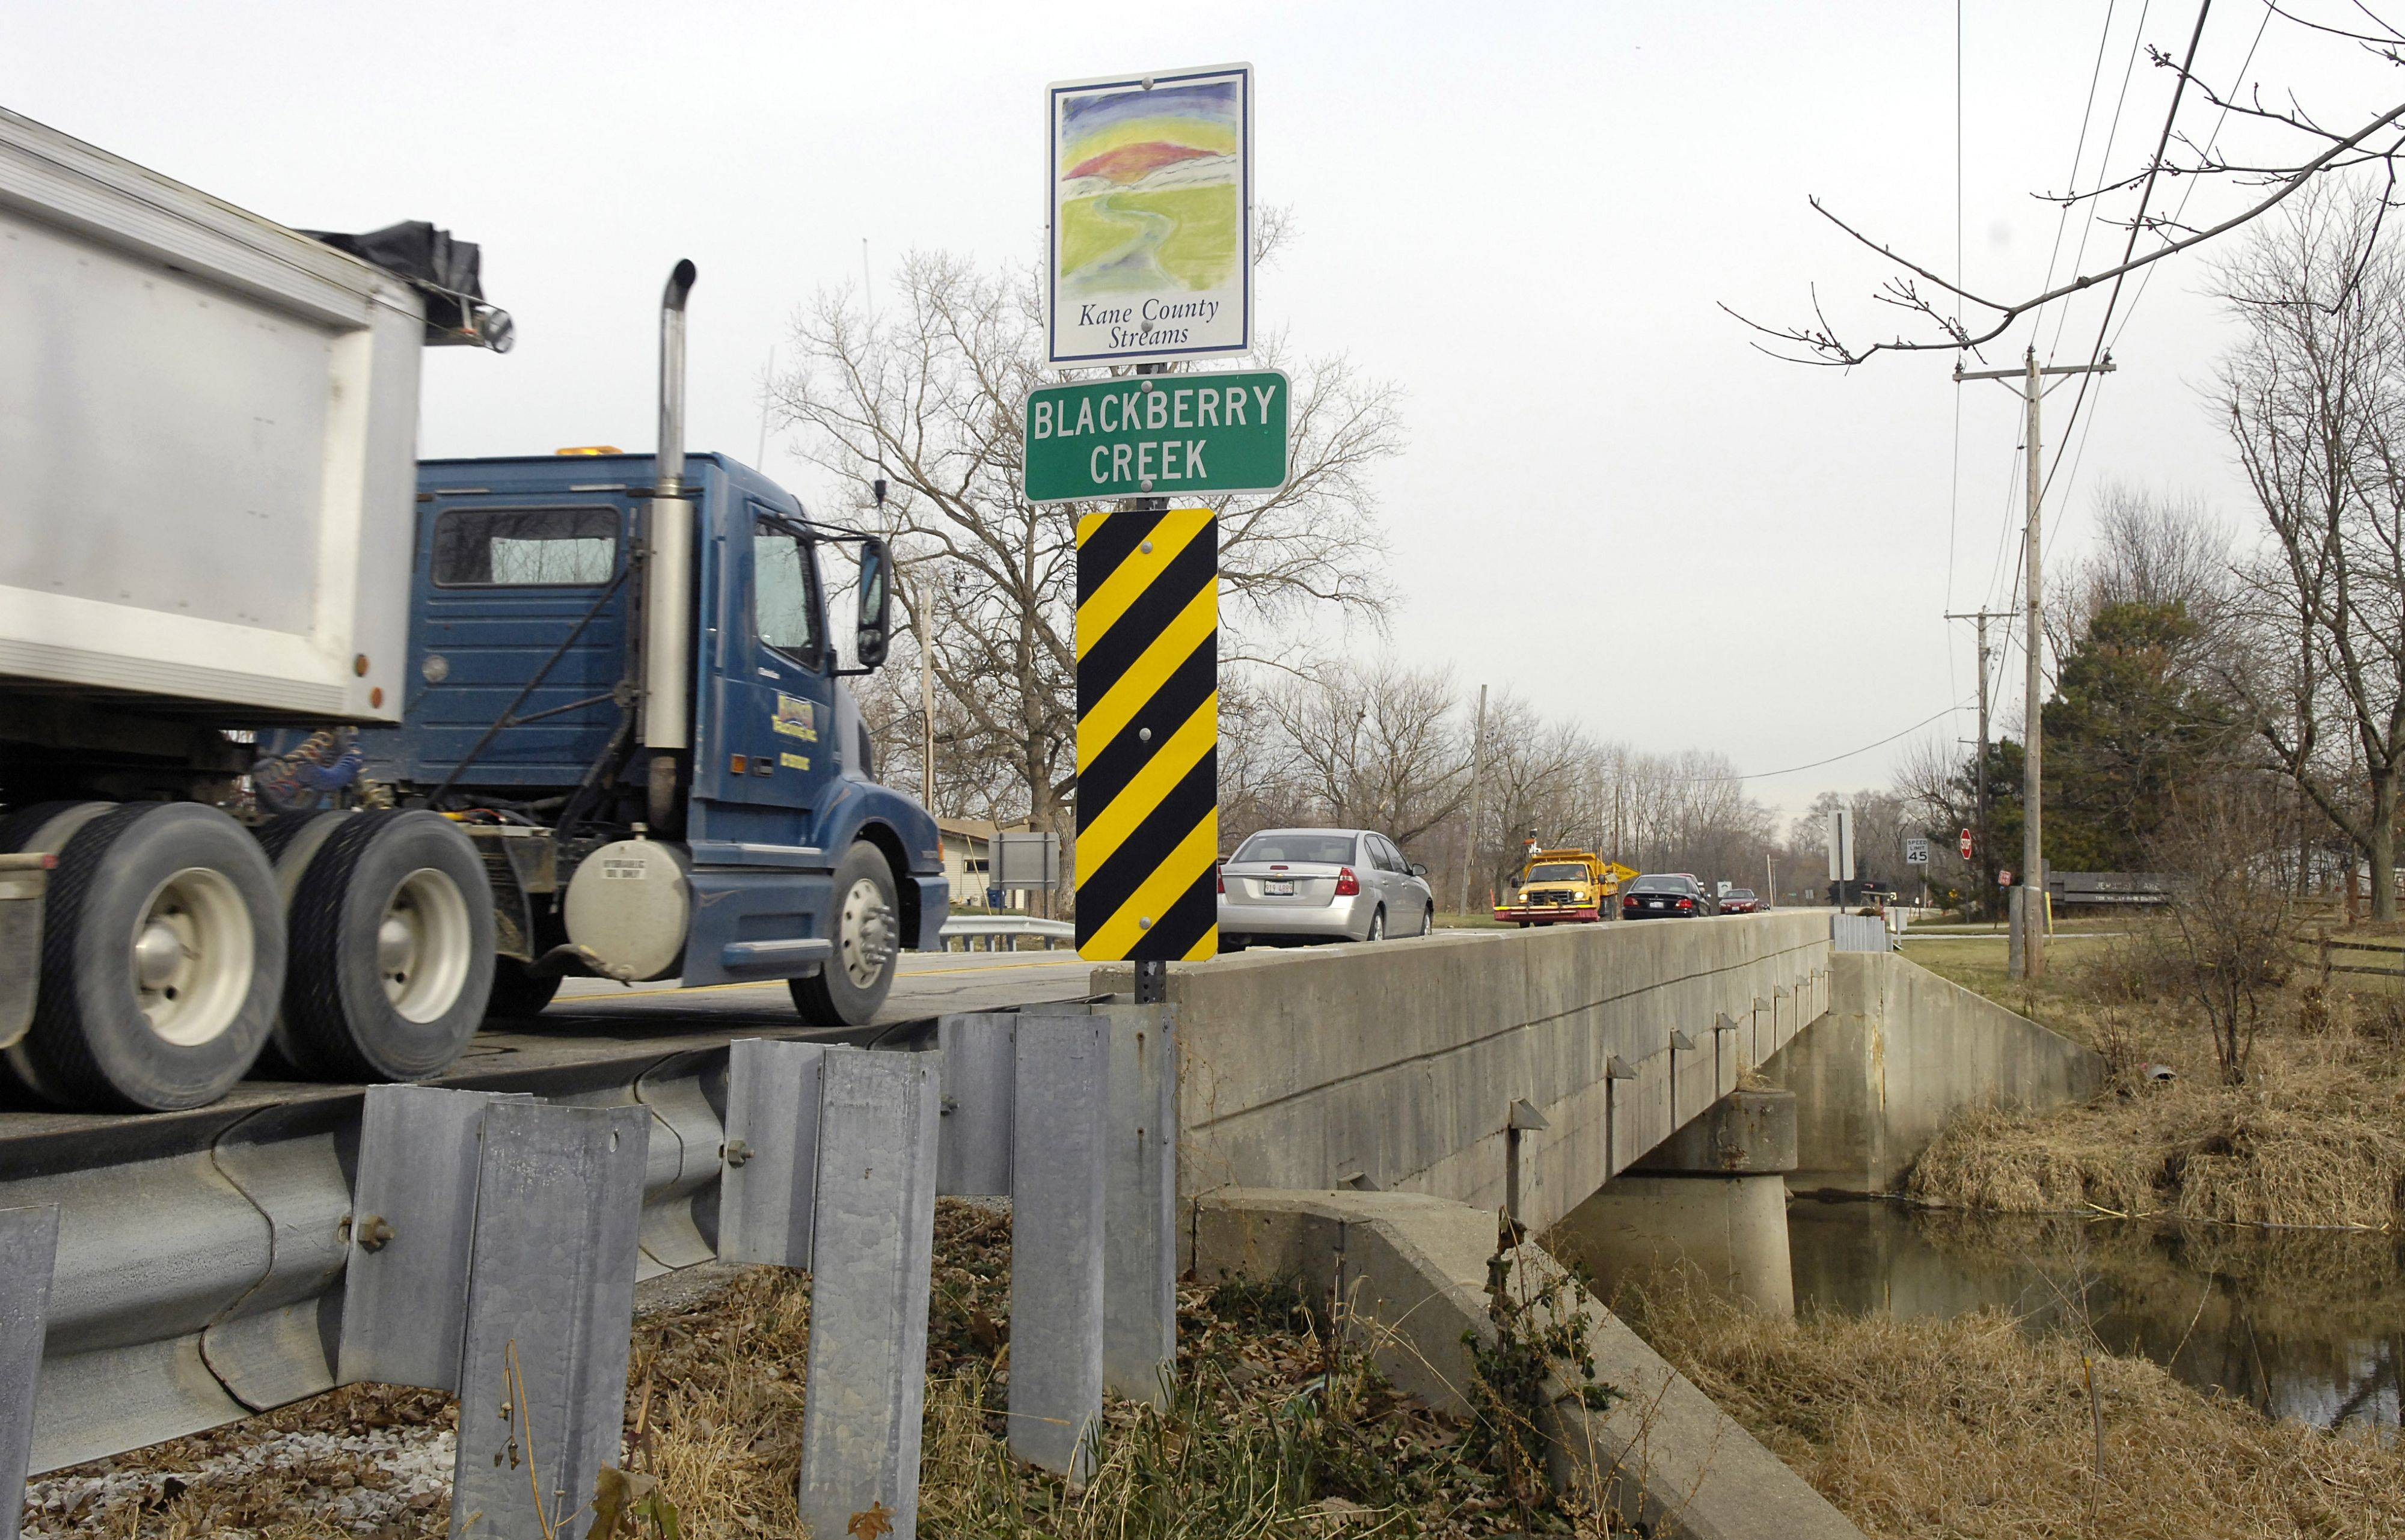 The Jericho Road bridge over Blackberry Creek in Sugar Grove is one of 293 rated structurally deficient in the six-county Chicago and suburban region. Inspections show it's in serious condition.